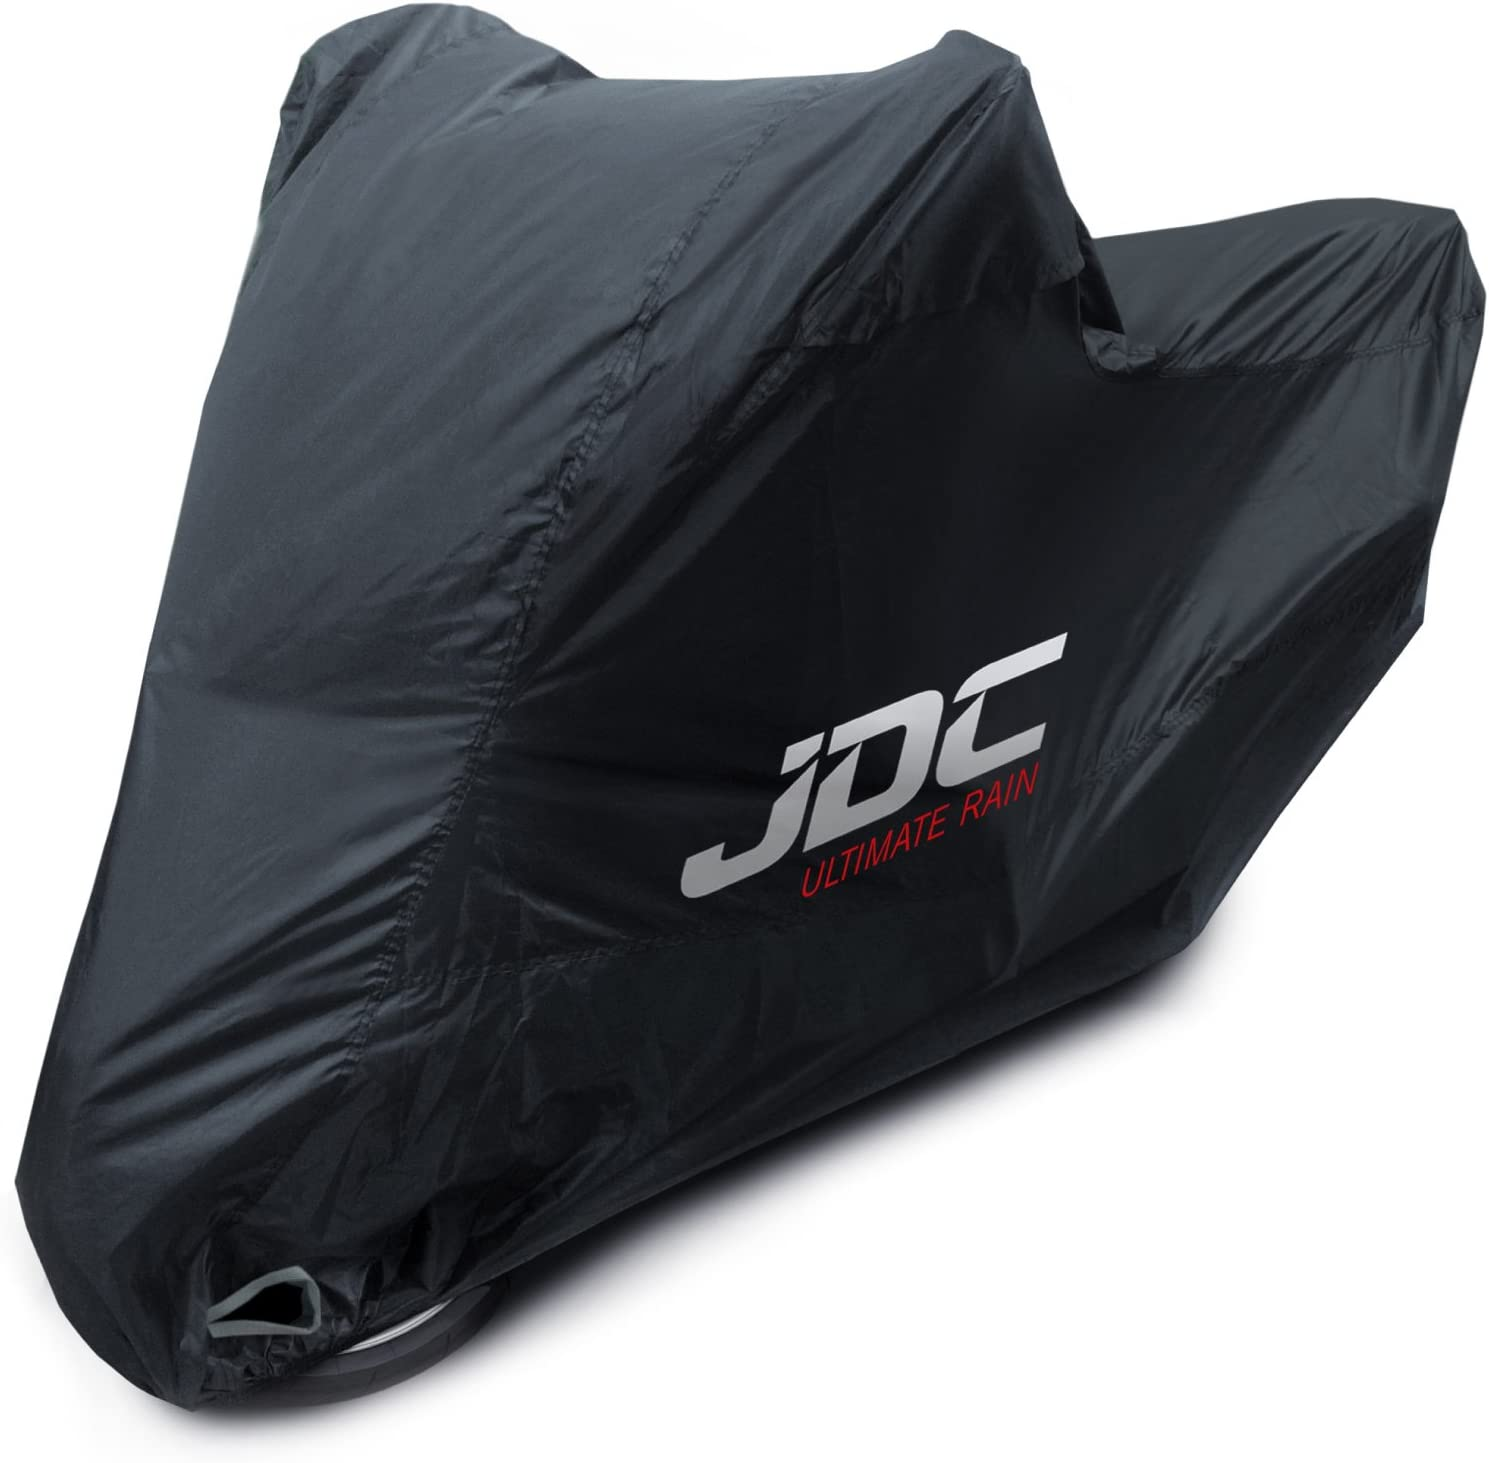 ULTIMATE RAIN - XL Tall Heavy Duty, Soft Lining, Heat Resistant Panels, Taped Seams JDC Motorcycle 100/% Waterproof Cover